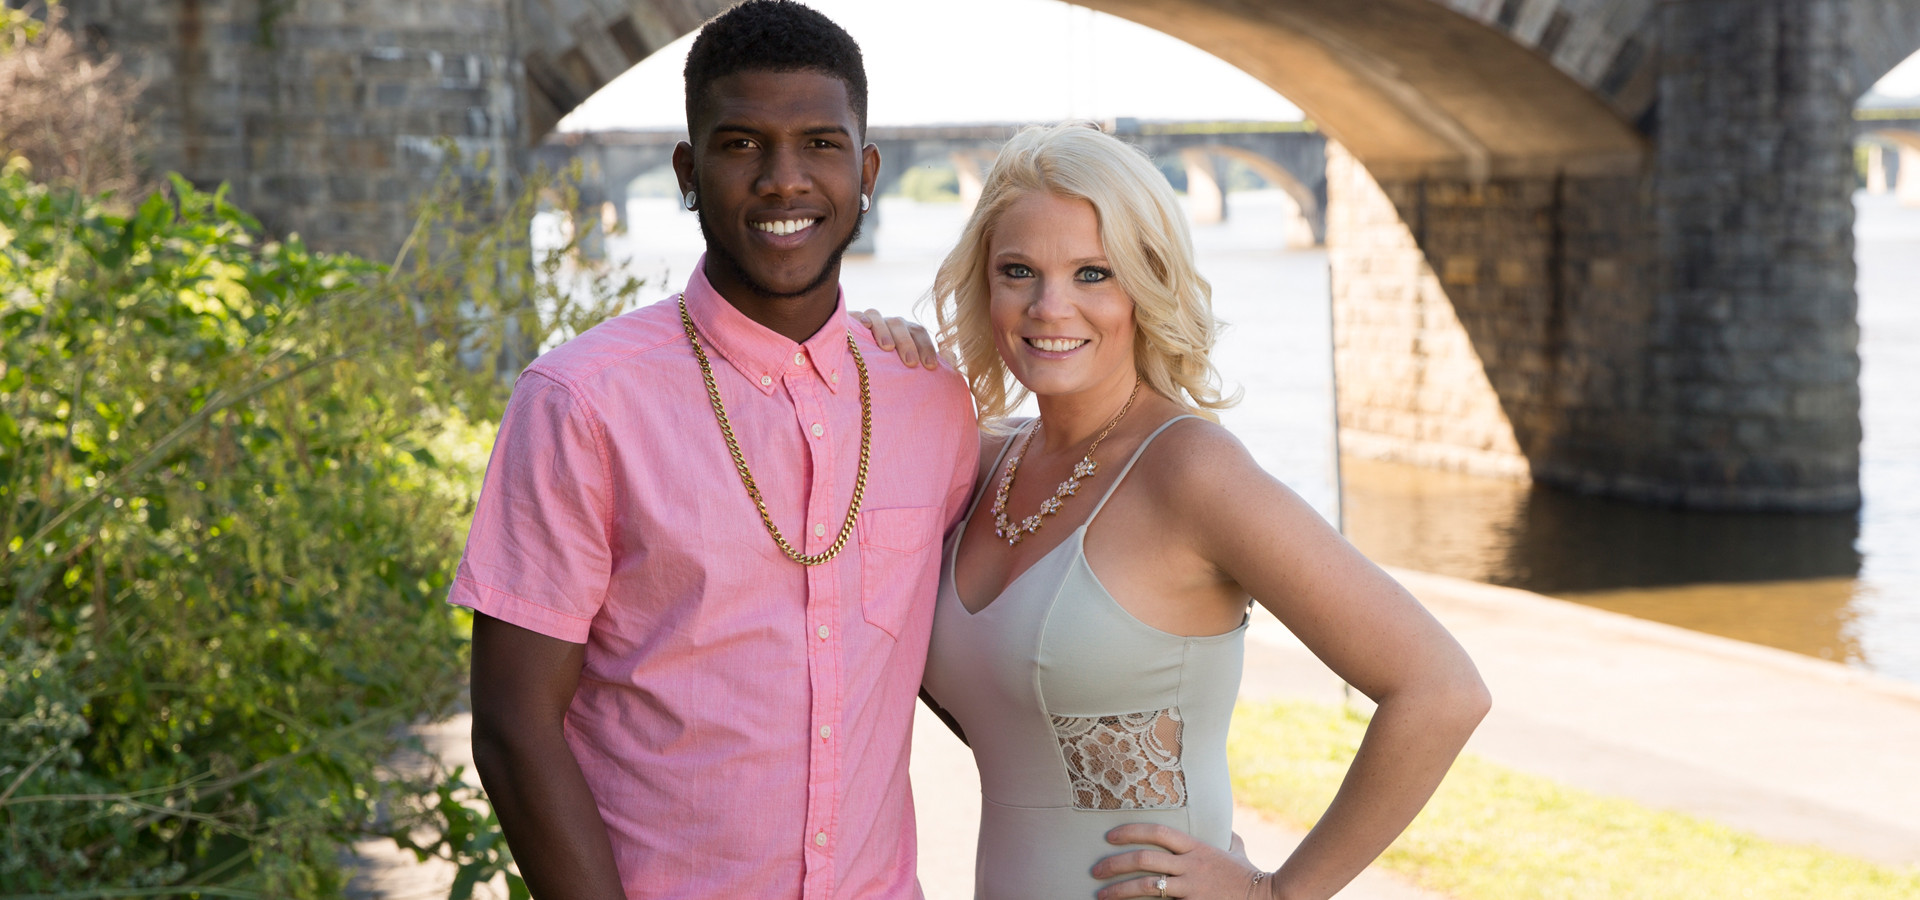 90 Day Fiancé's Ashley Martson Files for Divorce From Jay Smith Again